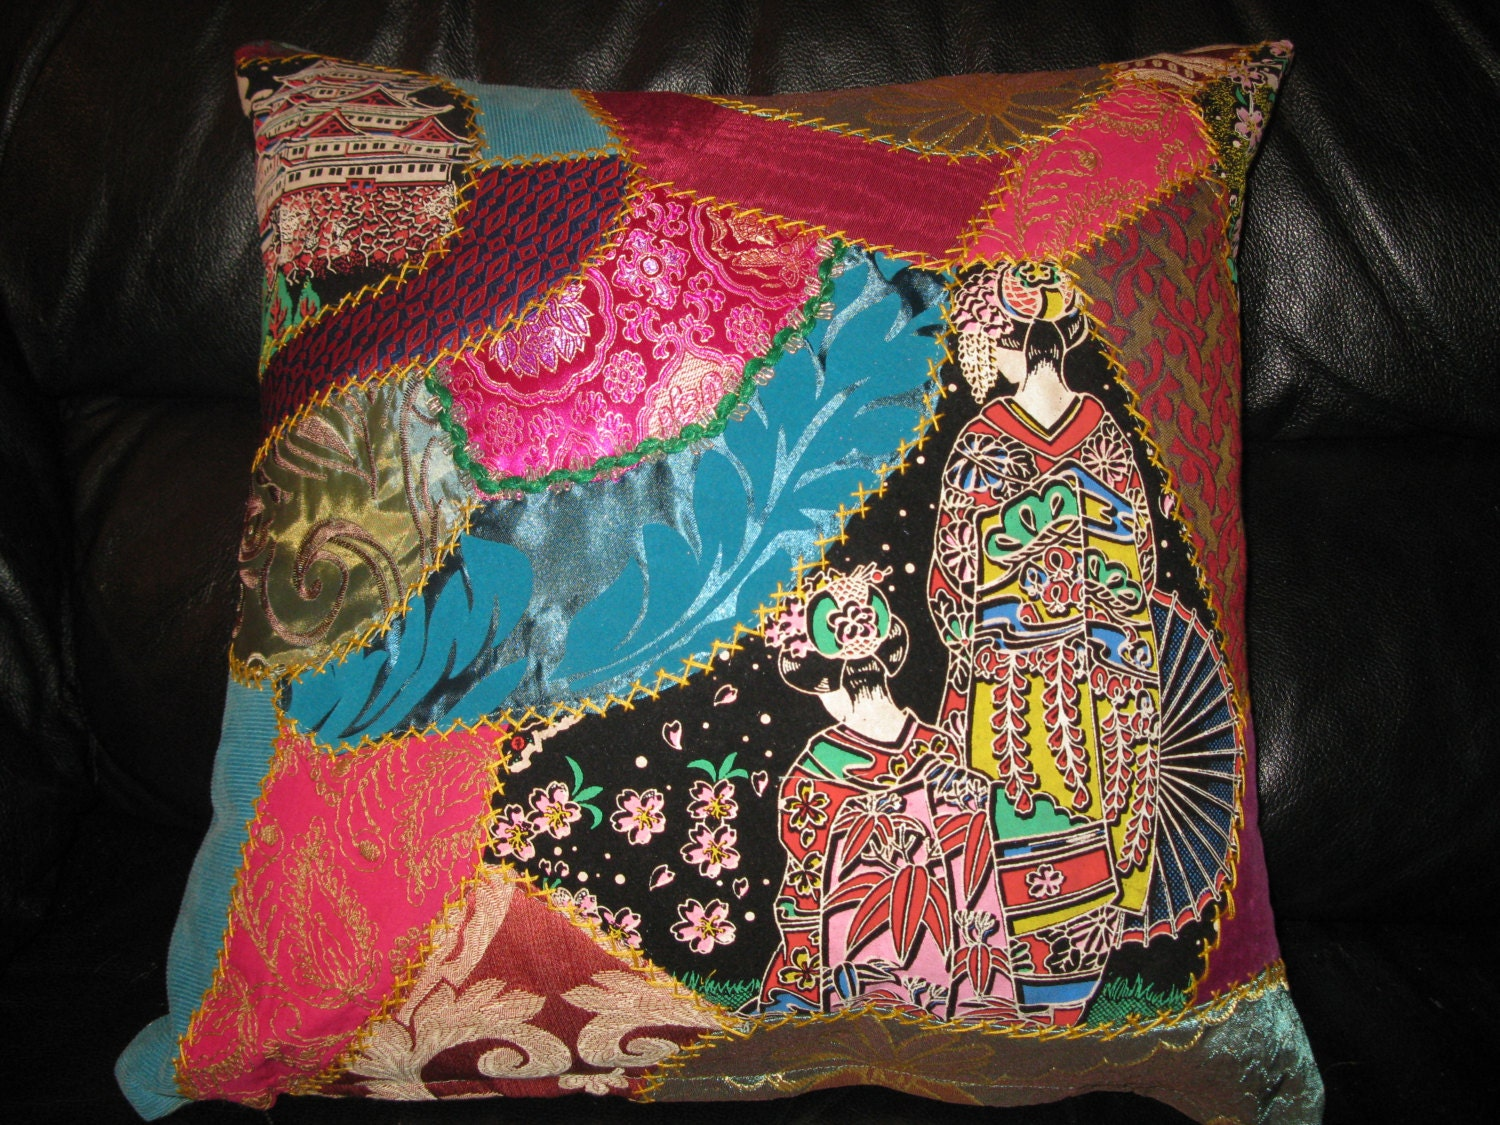 Geisha Embroidered Crazy Quilt Pillow Cover Unique Turquoise